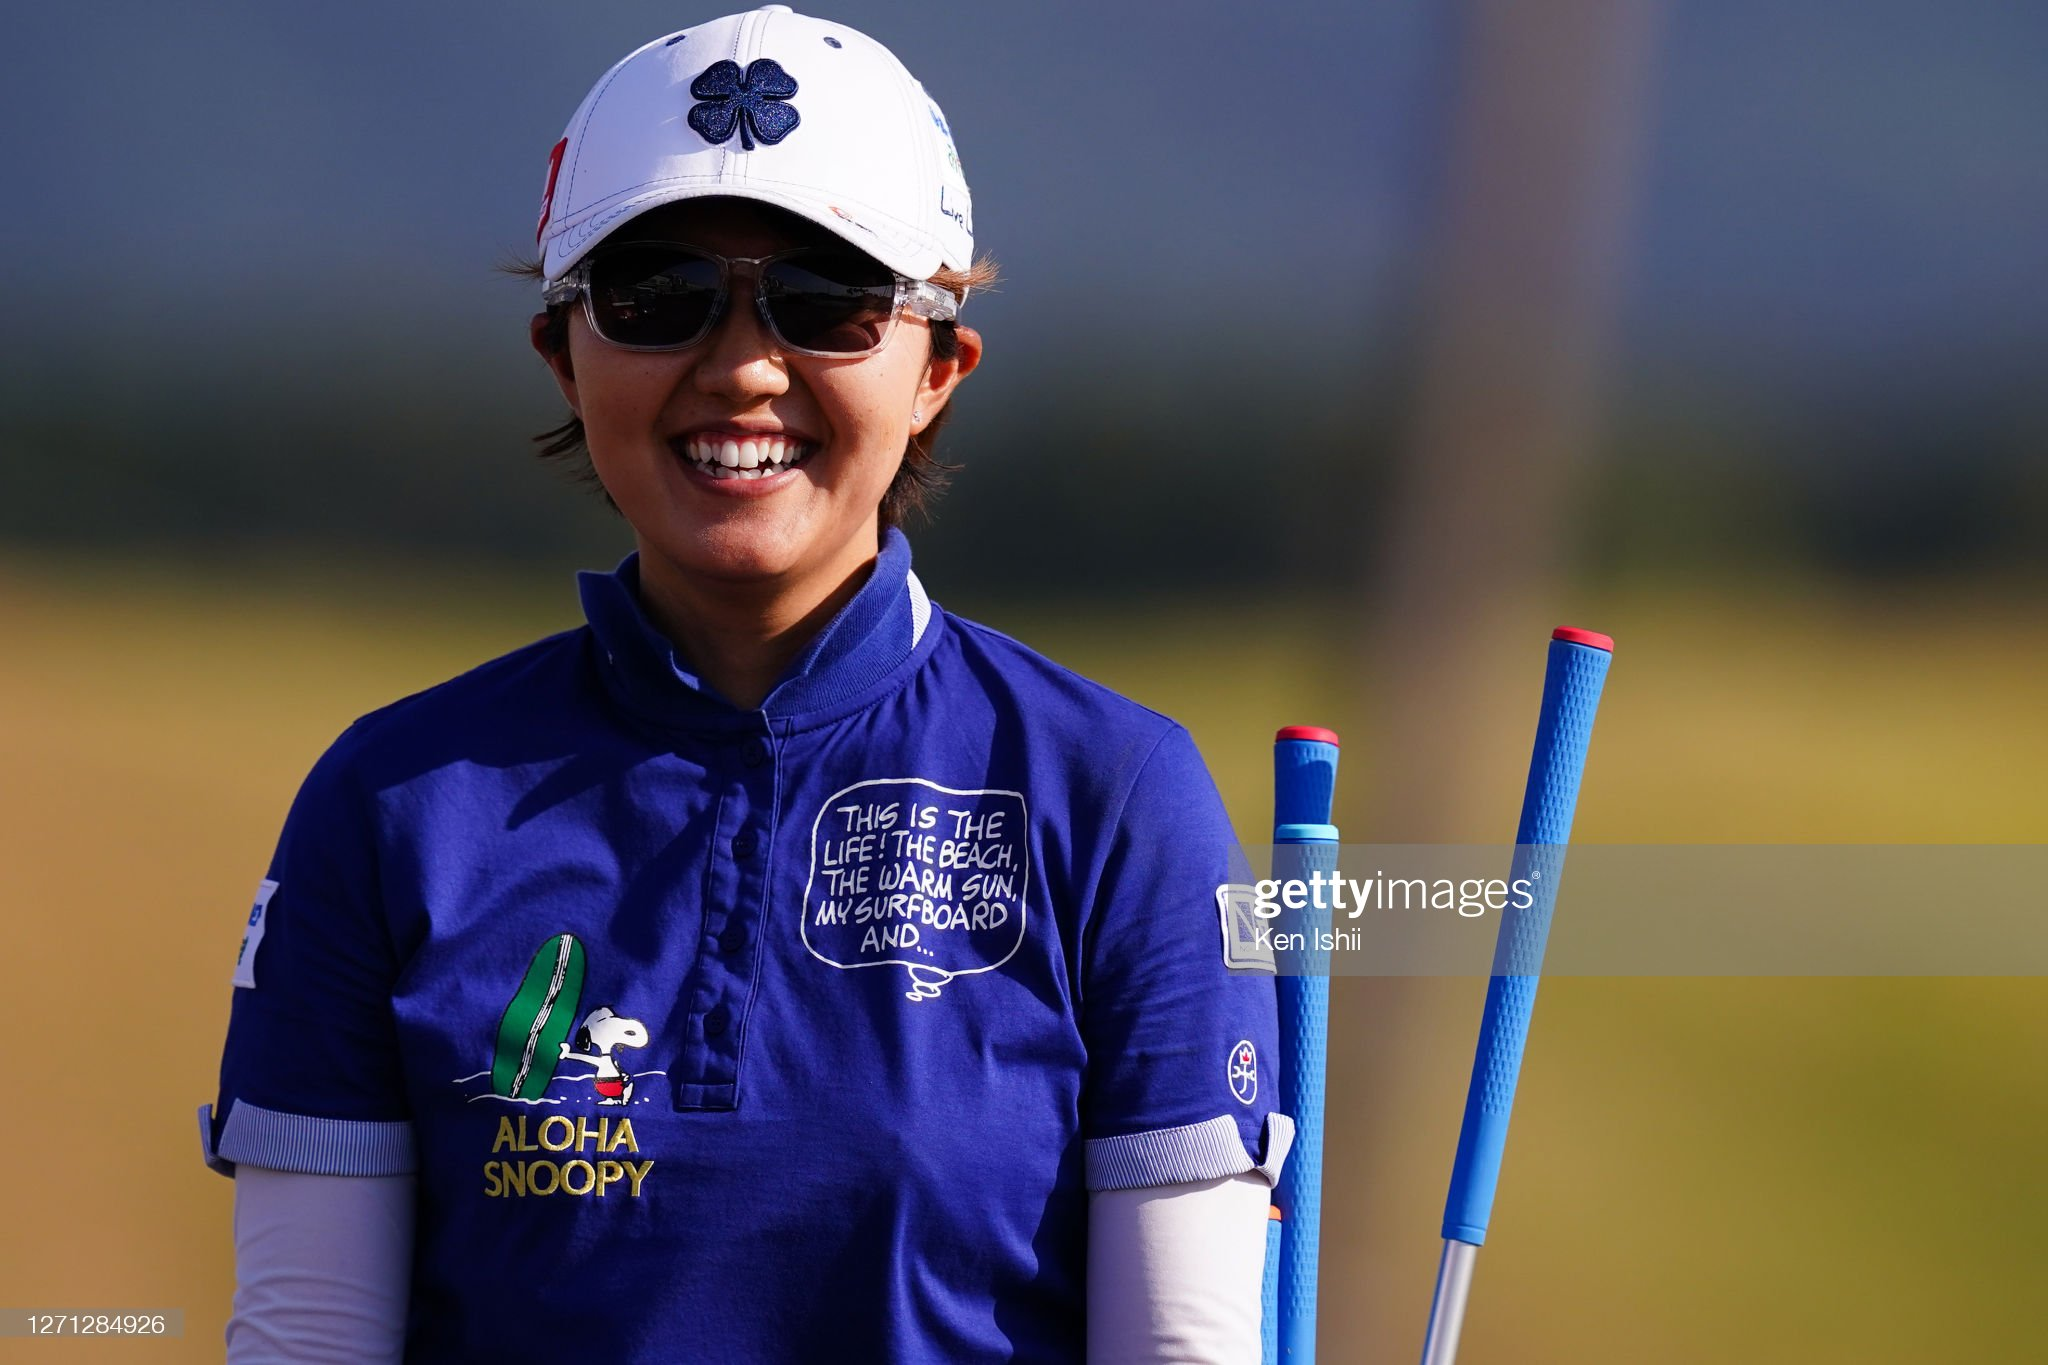 https://media.gettyimages.com/photos/karen-gondo-of-japan-smiles-after-the-practice-round-ahead-of-the-picture-id1271284926?s=2048x2048